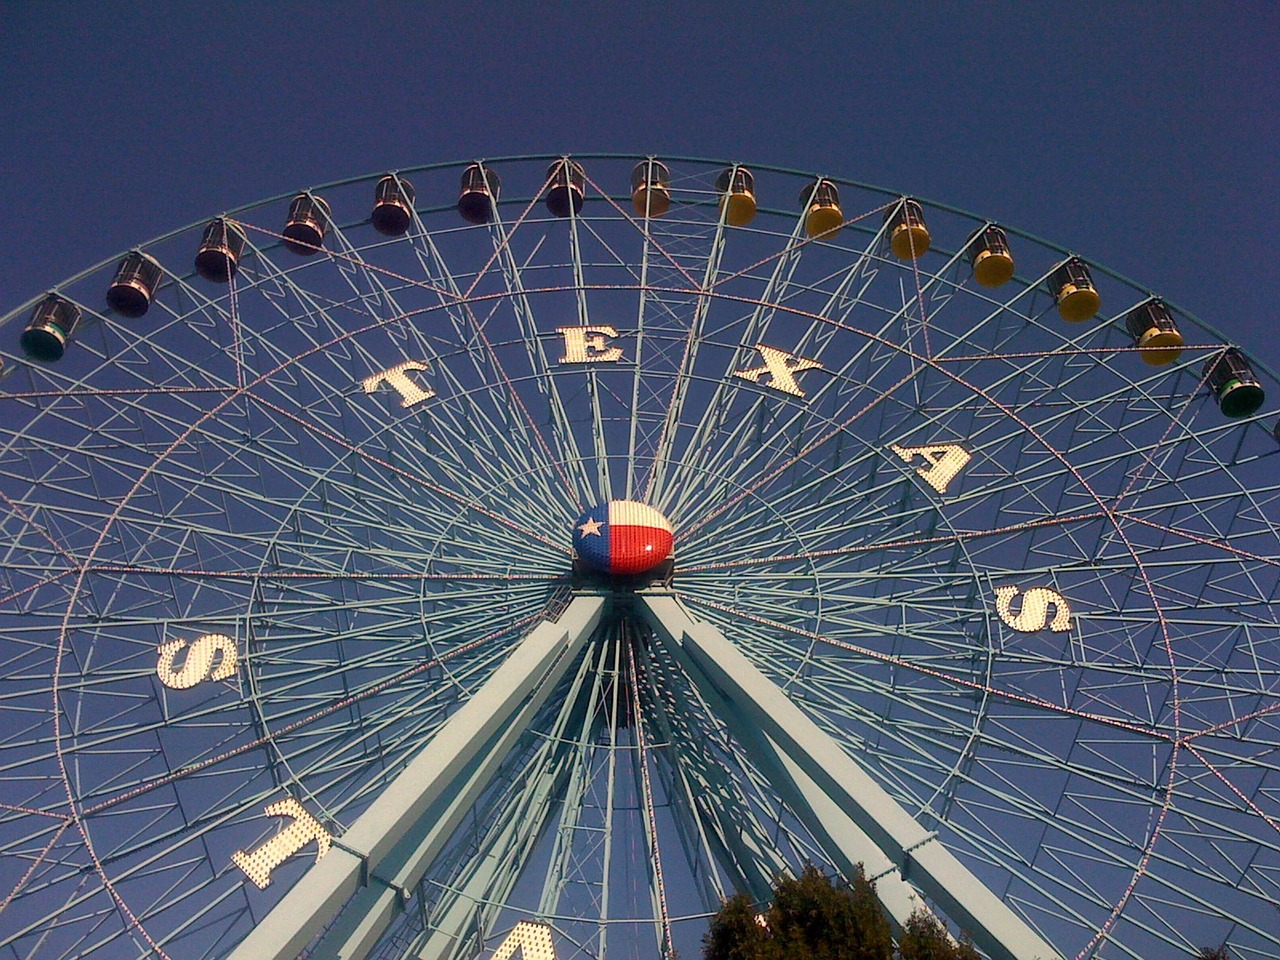 Texas used to have the largest Ferris wheel in North America. At 212 feet tall, the Texas Star dominates the fair grounds at the Texas State Fair in Dallas.